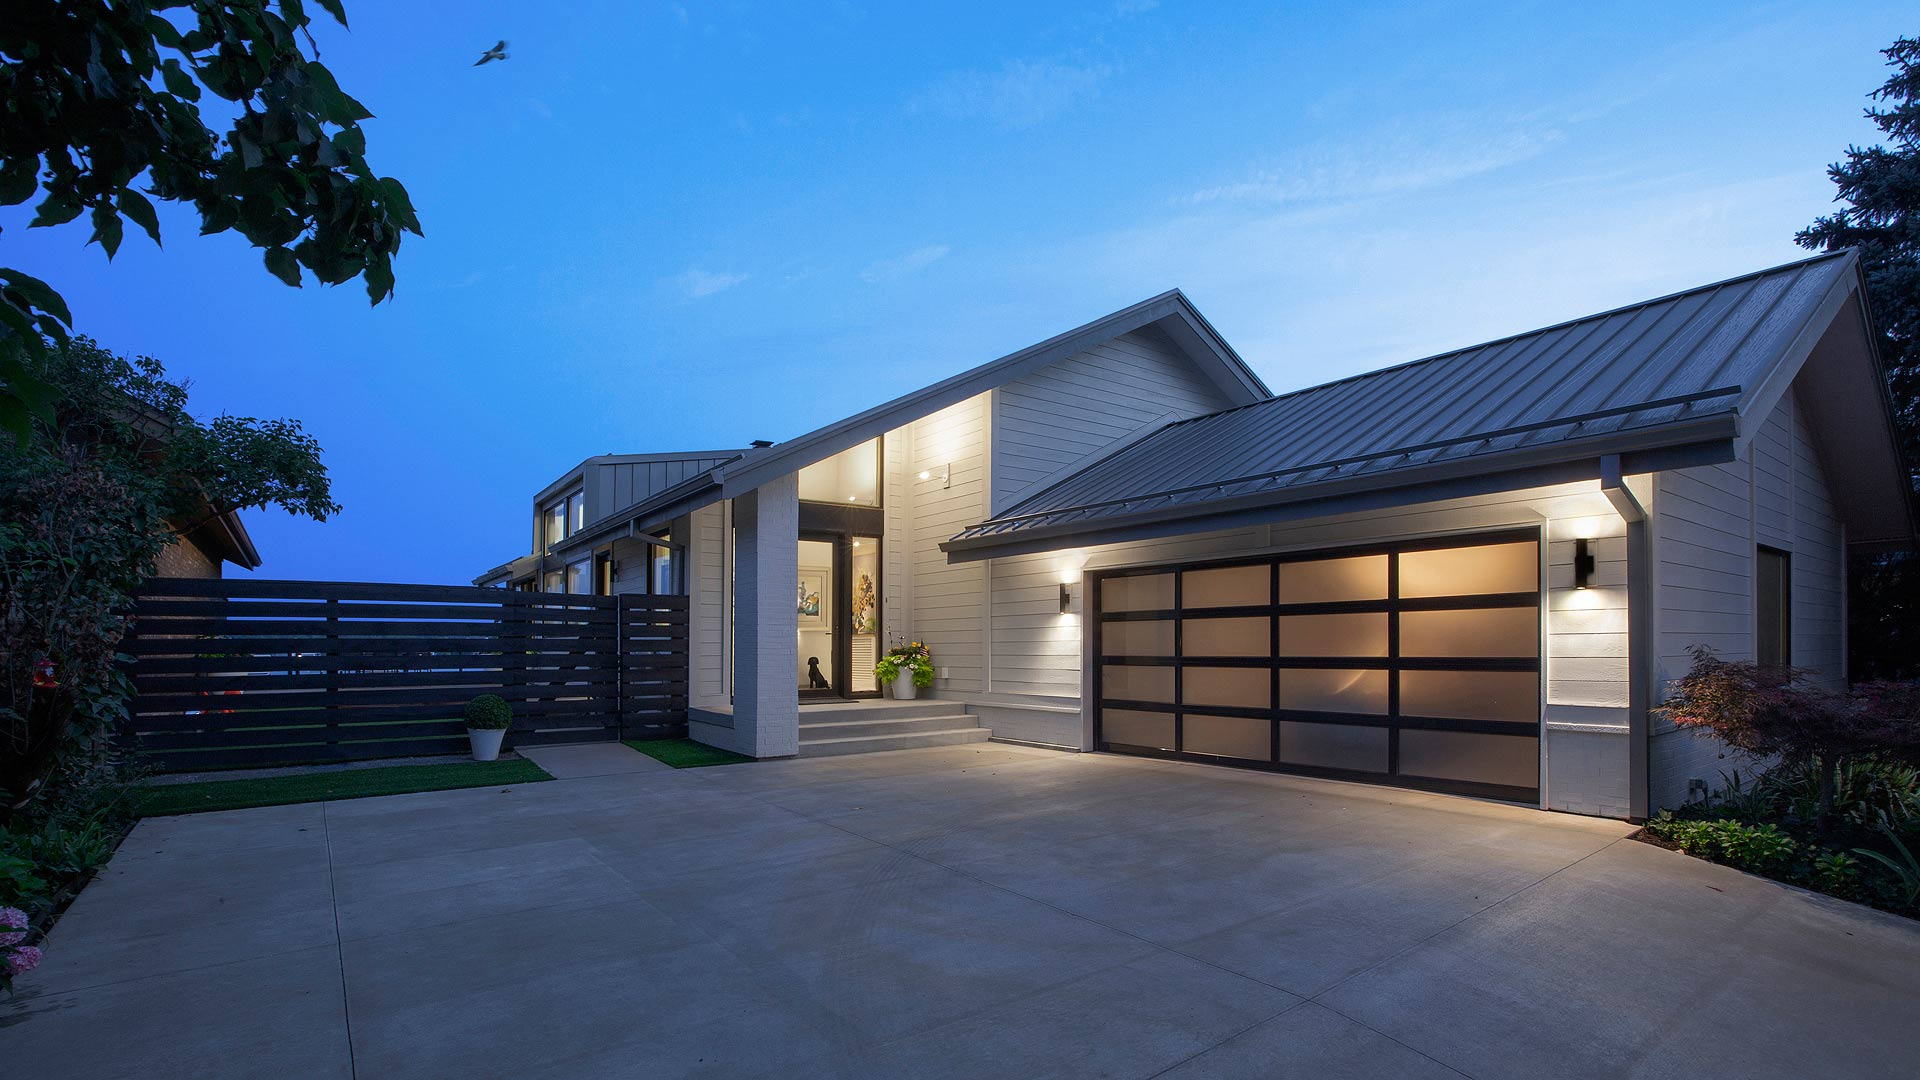 New renovation reinterprets 1980's cottage into new modern dwelling fitting in with neighborhood covenants, including new entry gallery, siding, glass overhead door, and standing seam metal roof - Modern Lakehouse Renovation - Clearwater